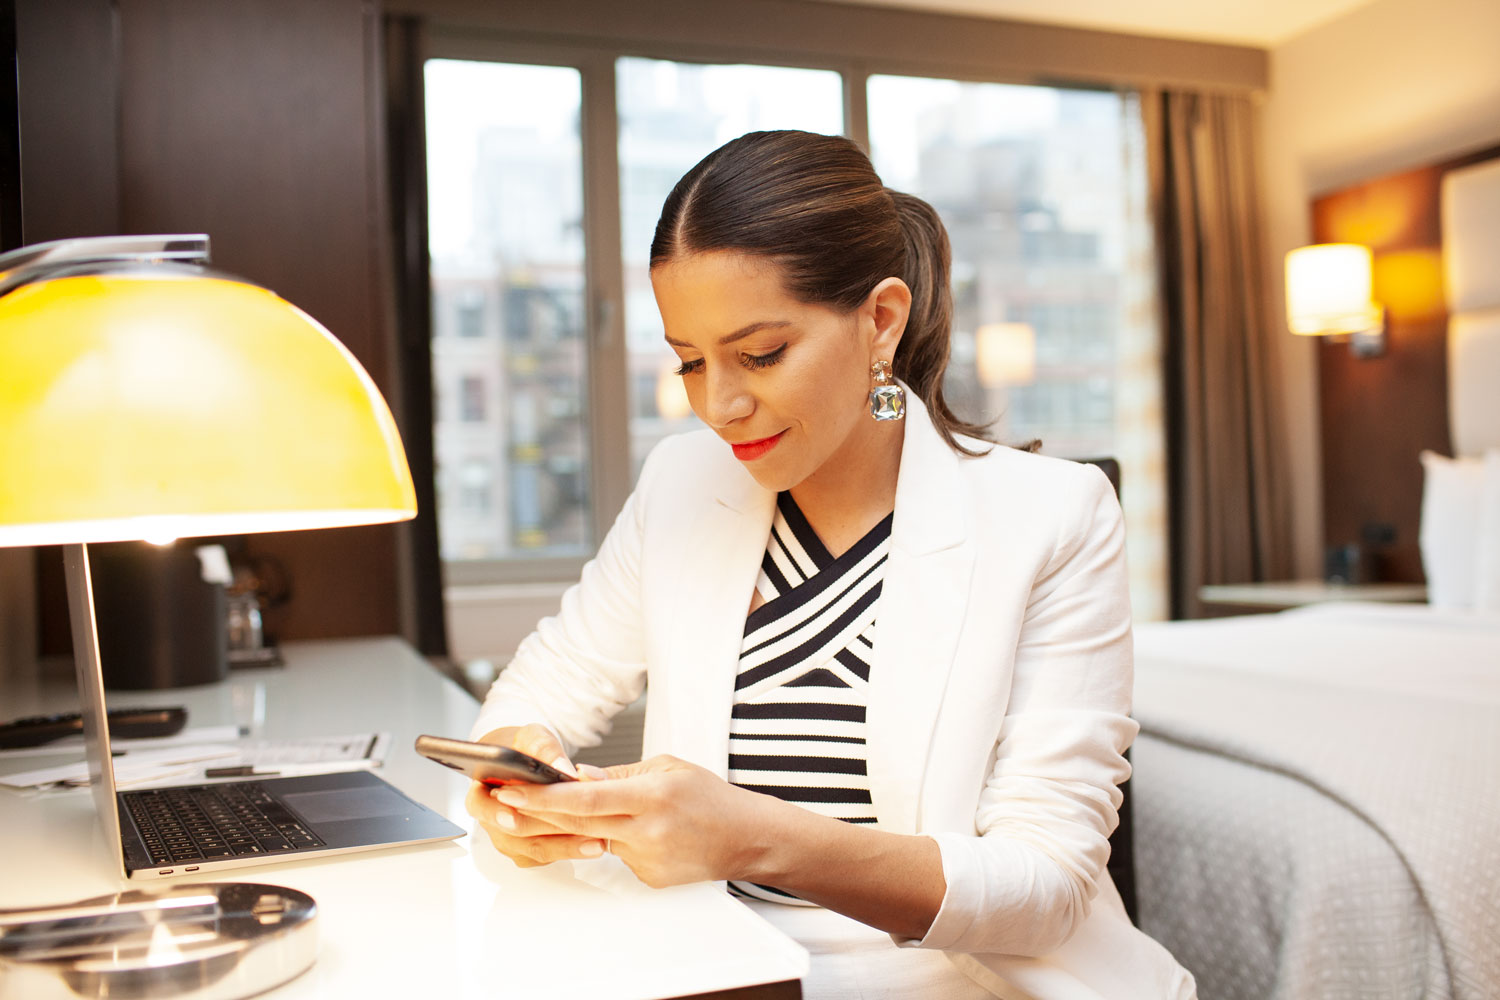 5 Ways to Unwind on Your Next Business Trip